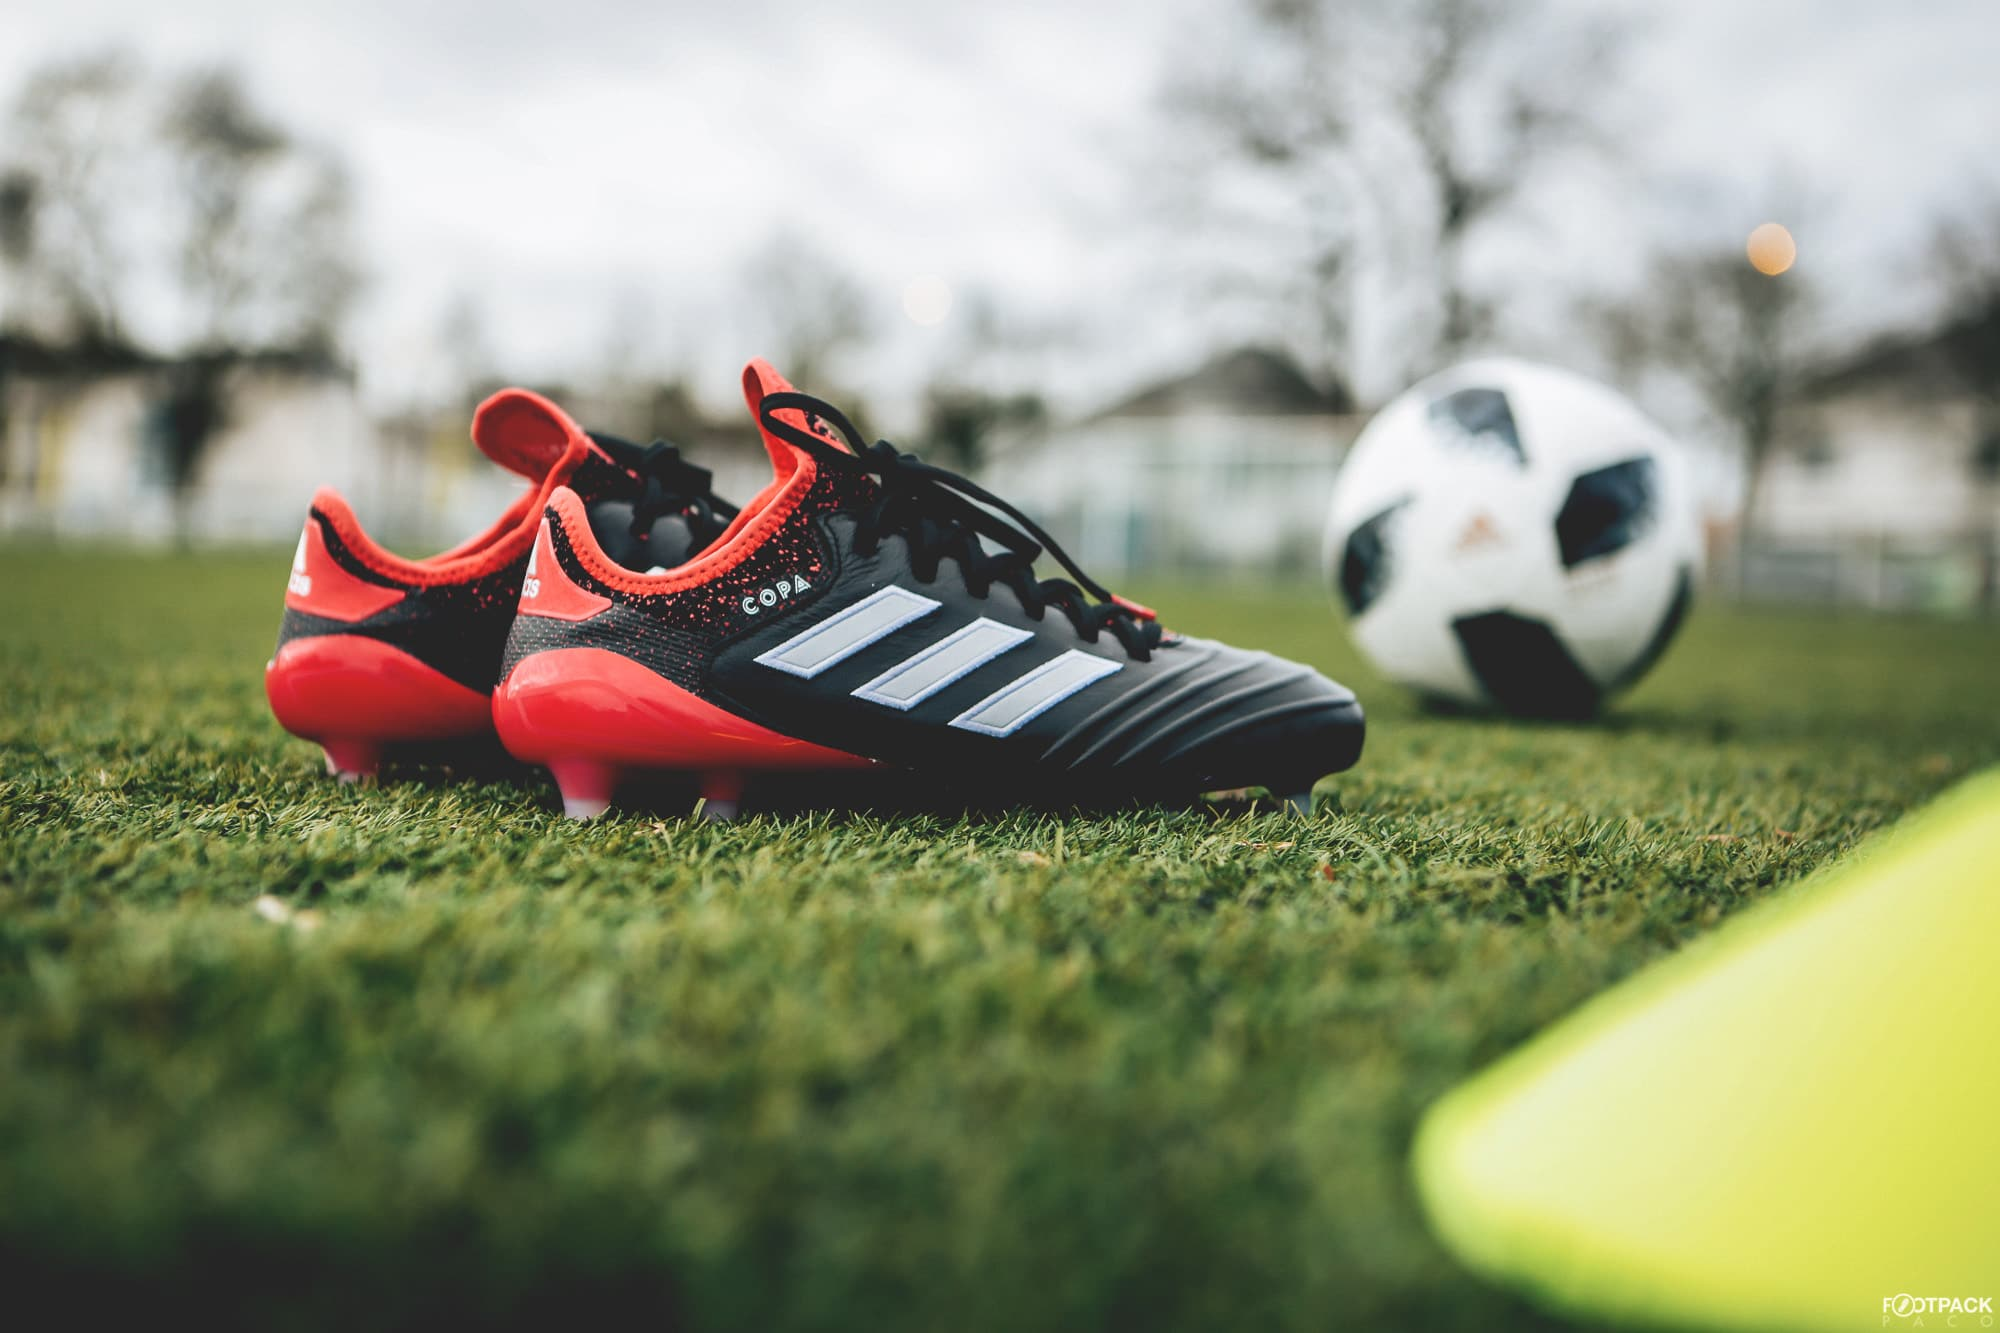 chaussure-football-adidas-copa18-cold-blooded-janvier-2018-1